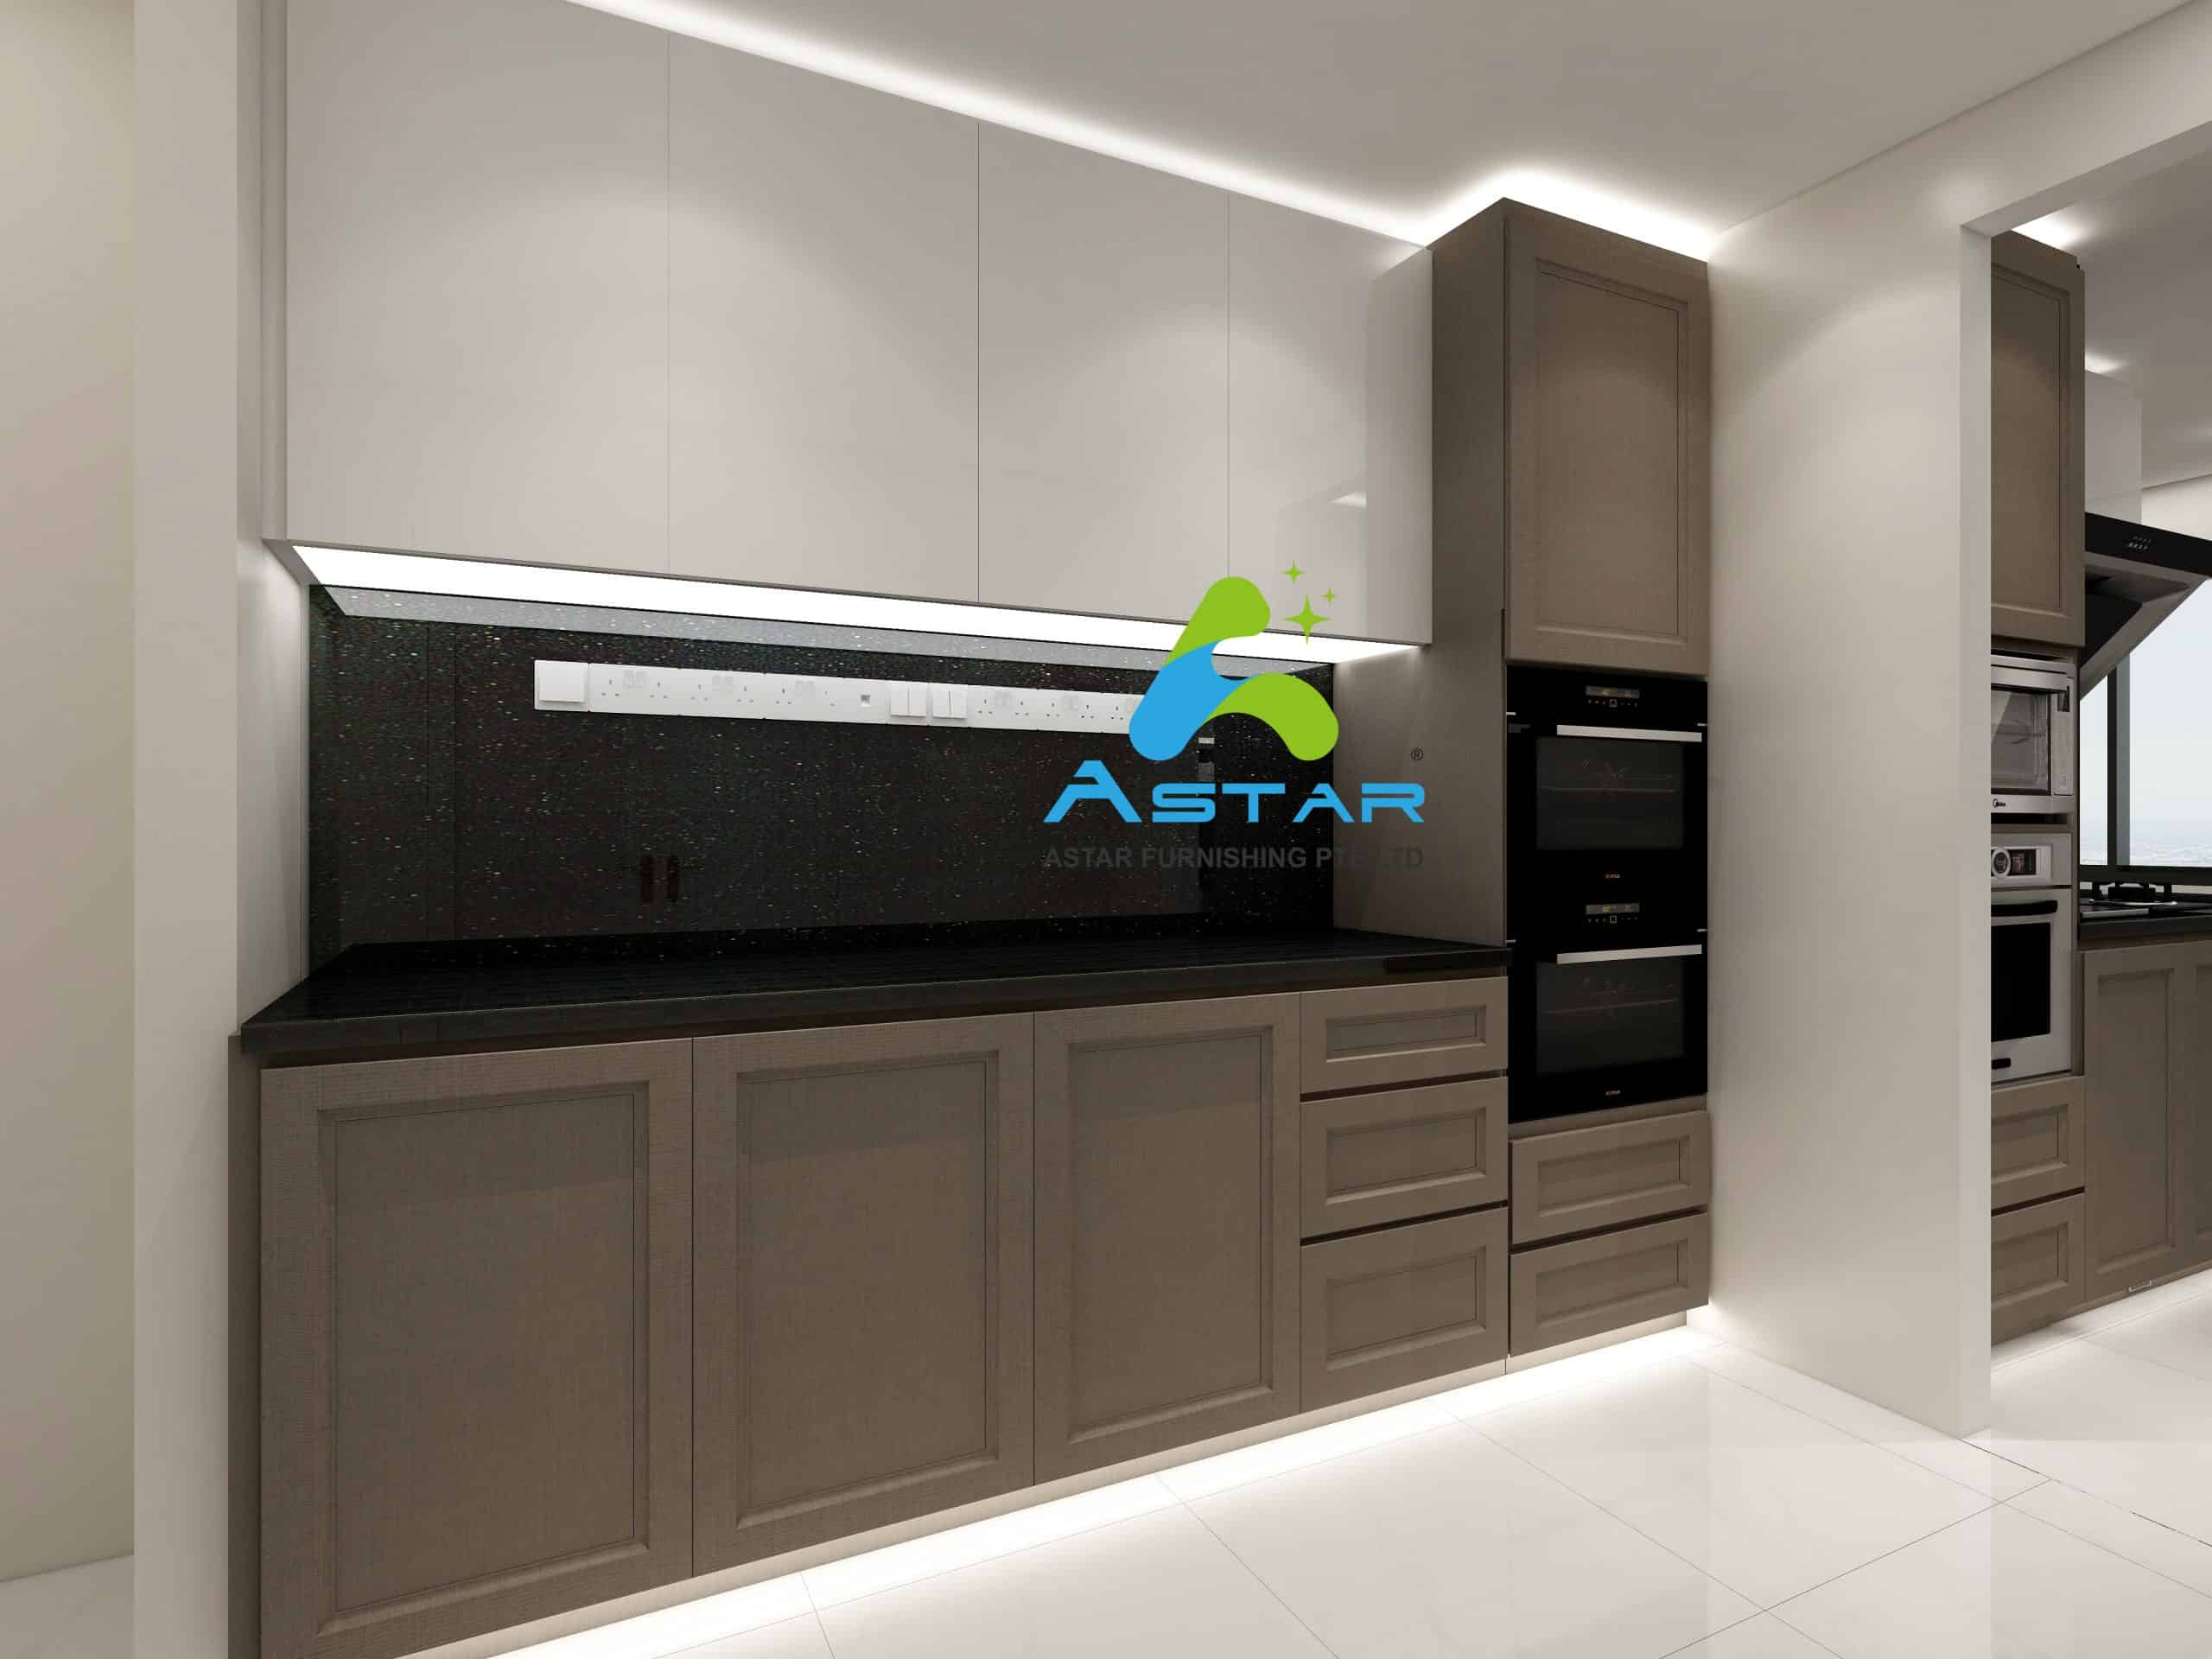 a star furnishing aluminium projects 20. Blk 830 Woodlands st 83 023 scaled